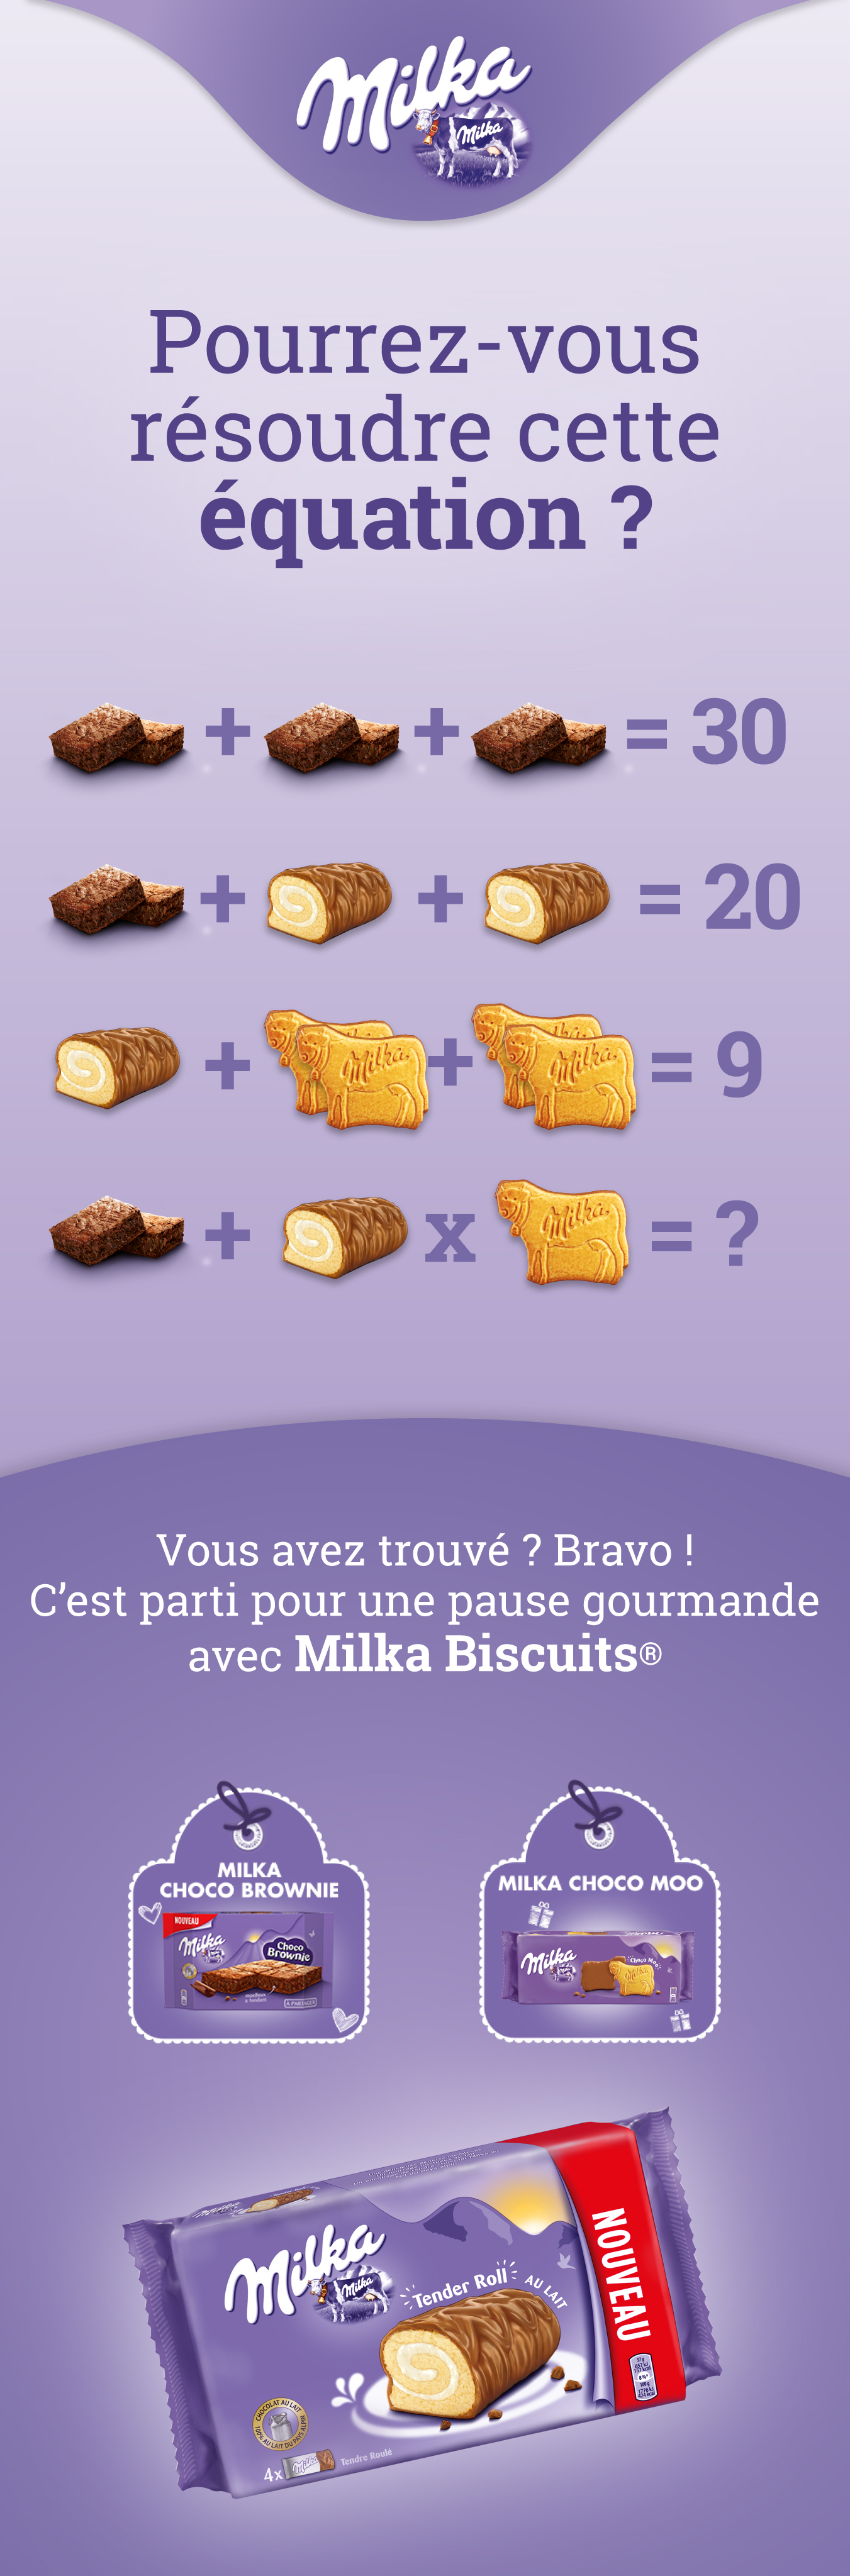 pause gourmande avec milka biscuit